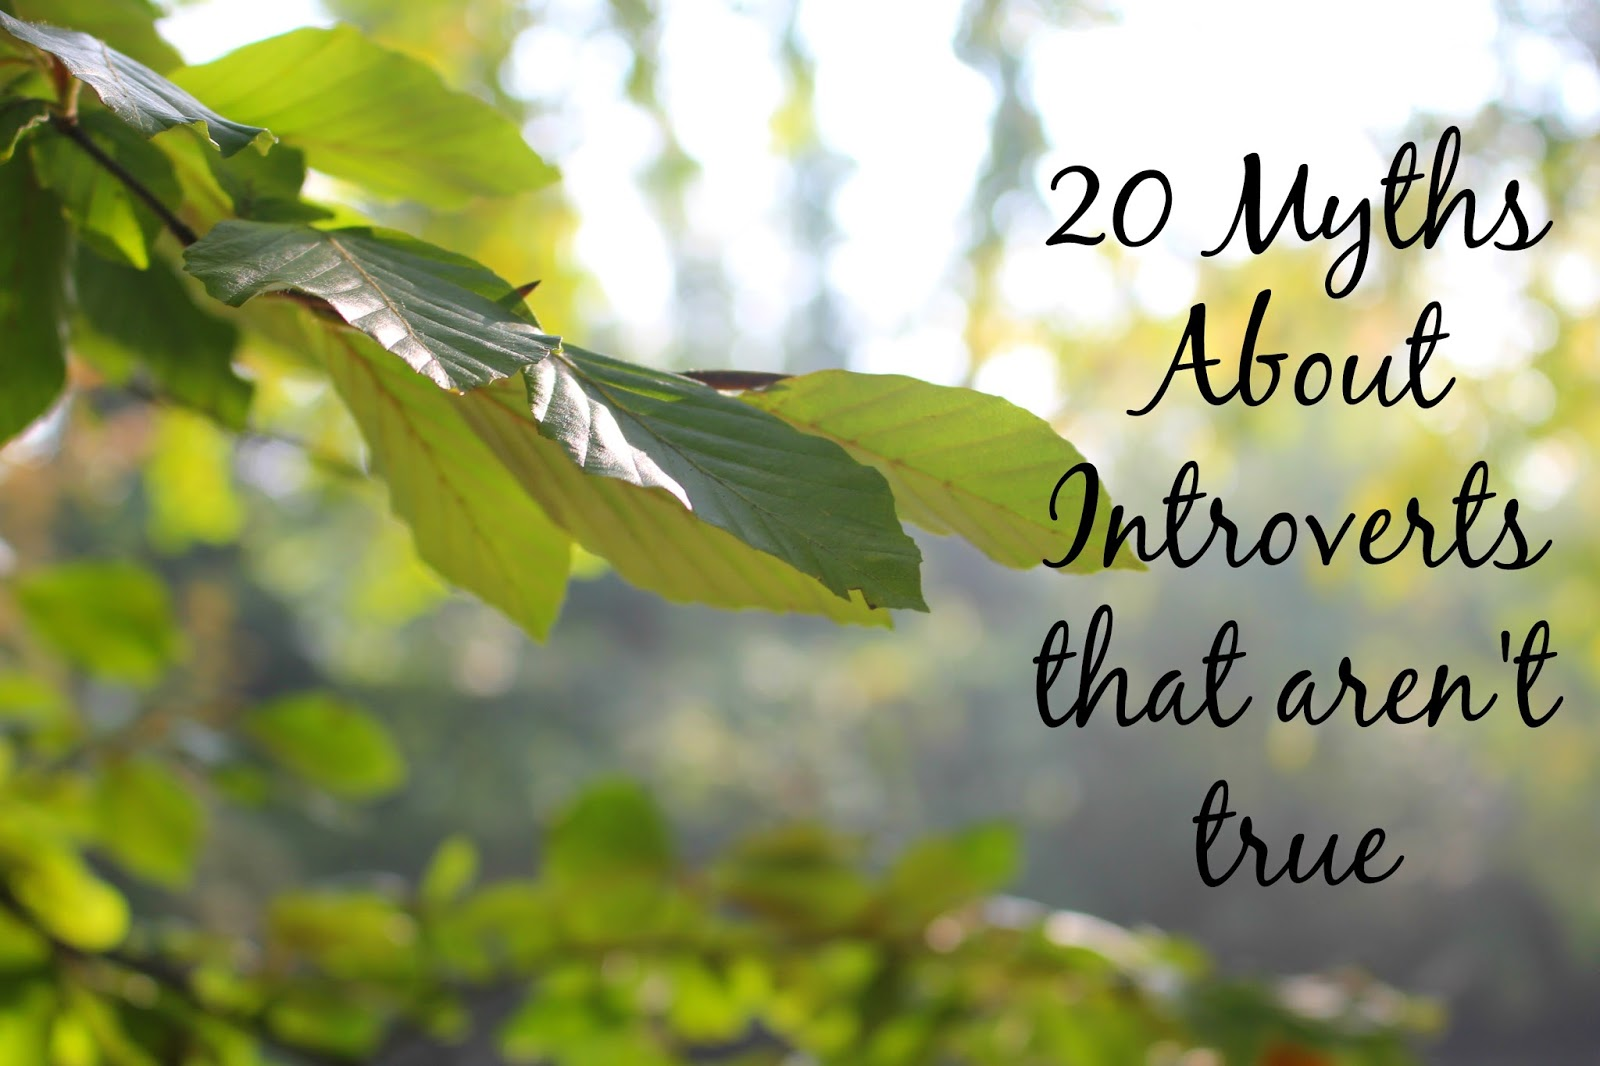 20 Myths About Introverts that aren't true lists lifestyle blogger UK buzzfeed